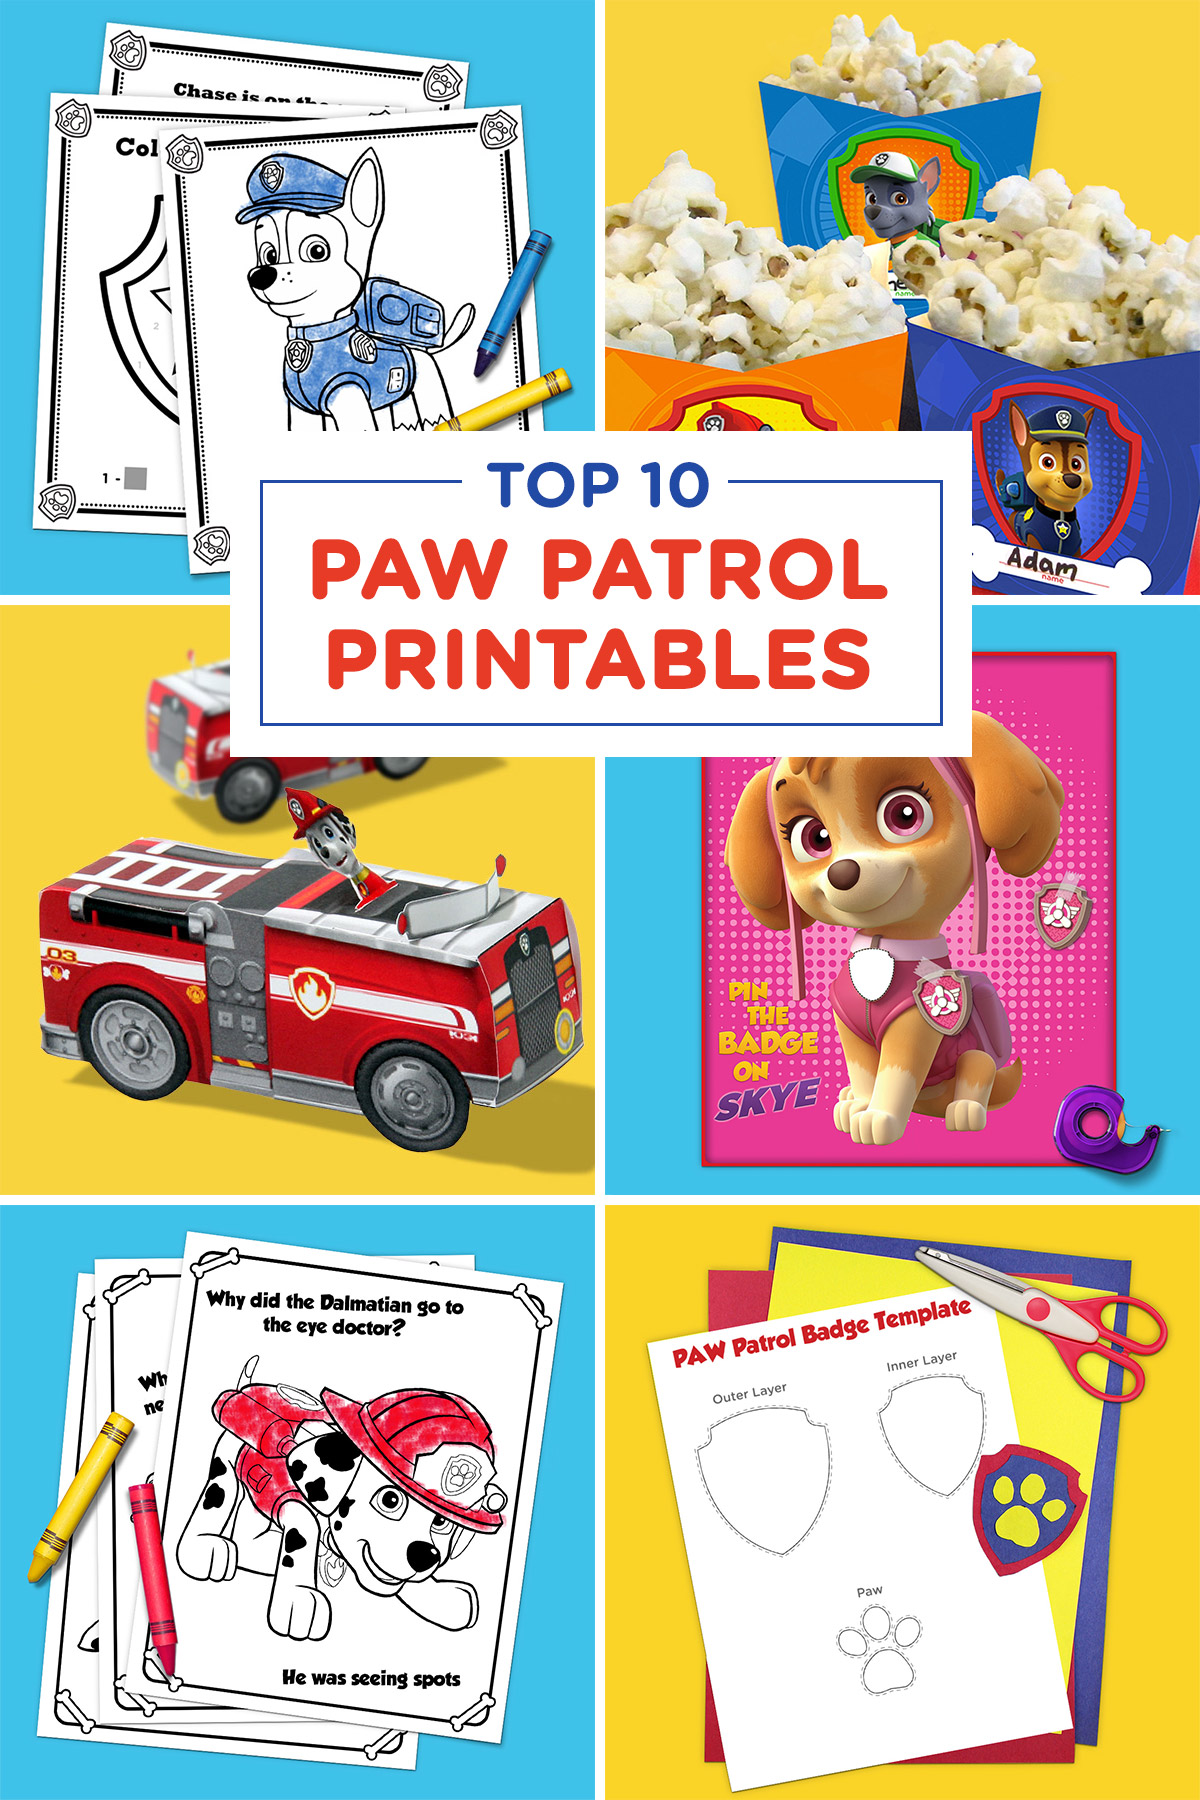 photograph about Free Printable Paw Patrol Badges called The Supreme 10 PAW Patrol Printables of All Season Nickelodeon